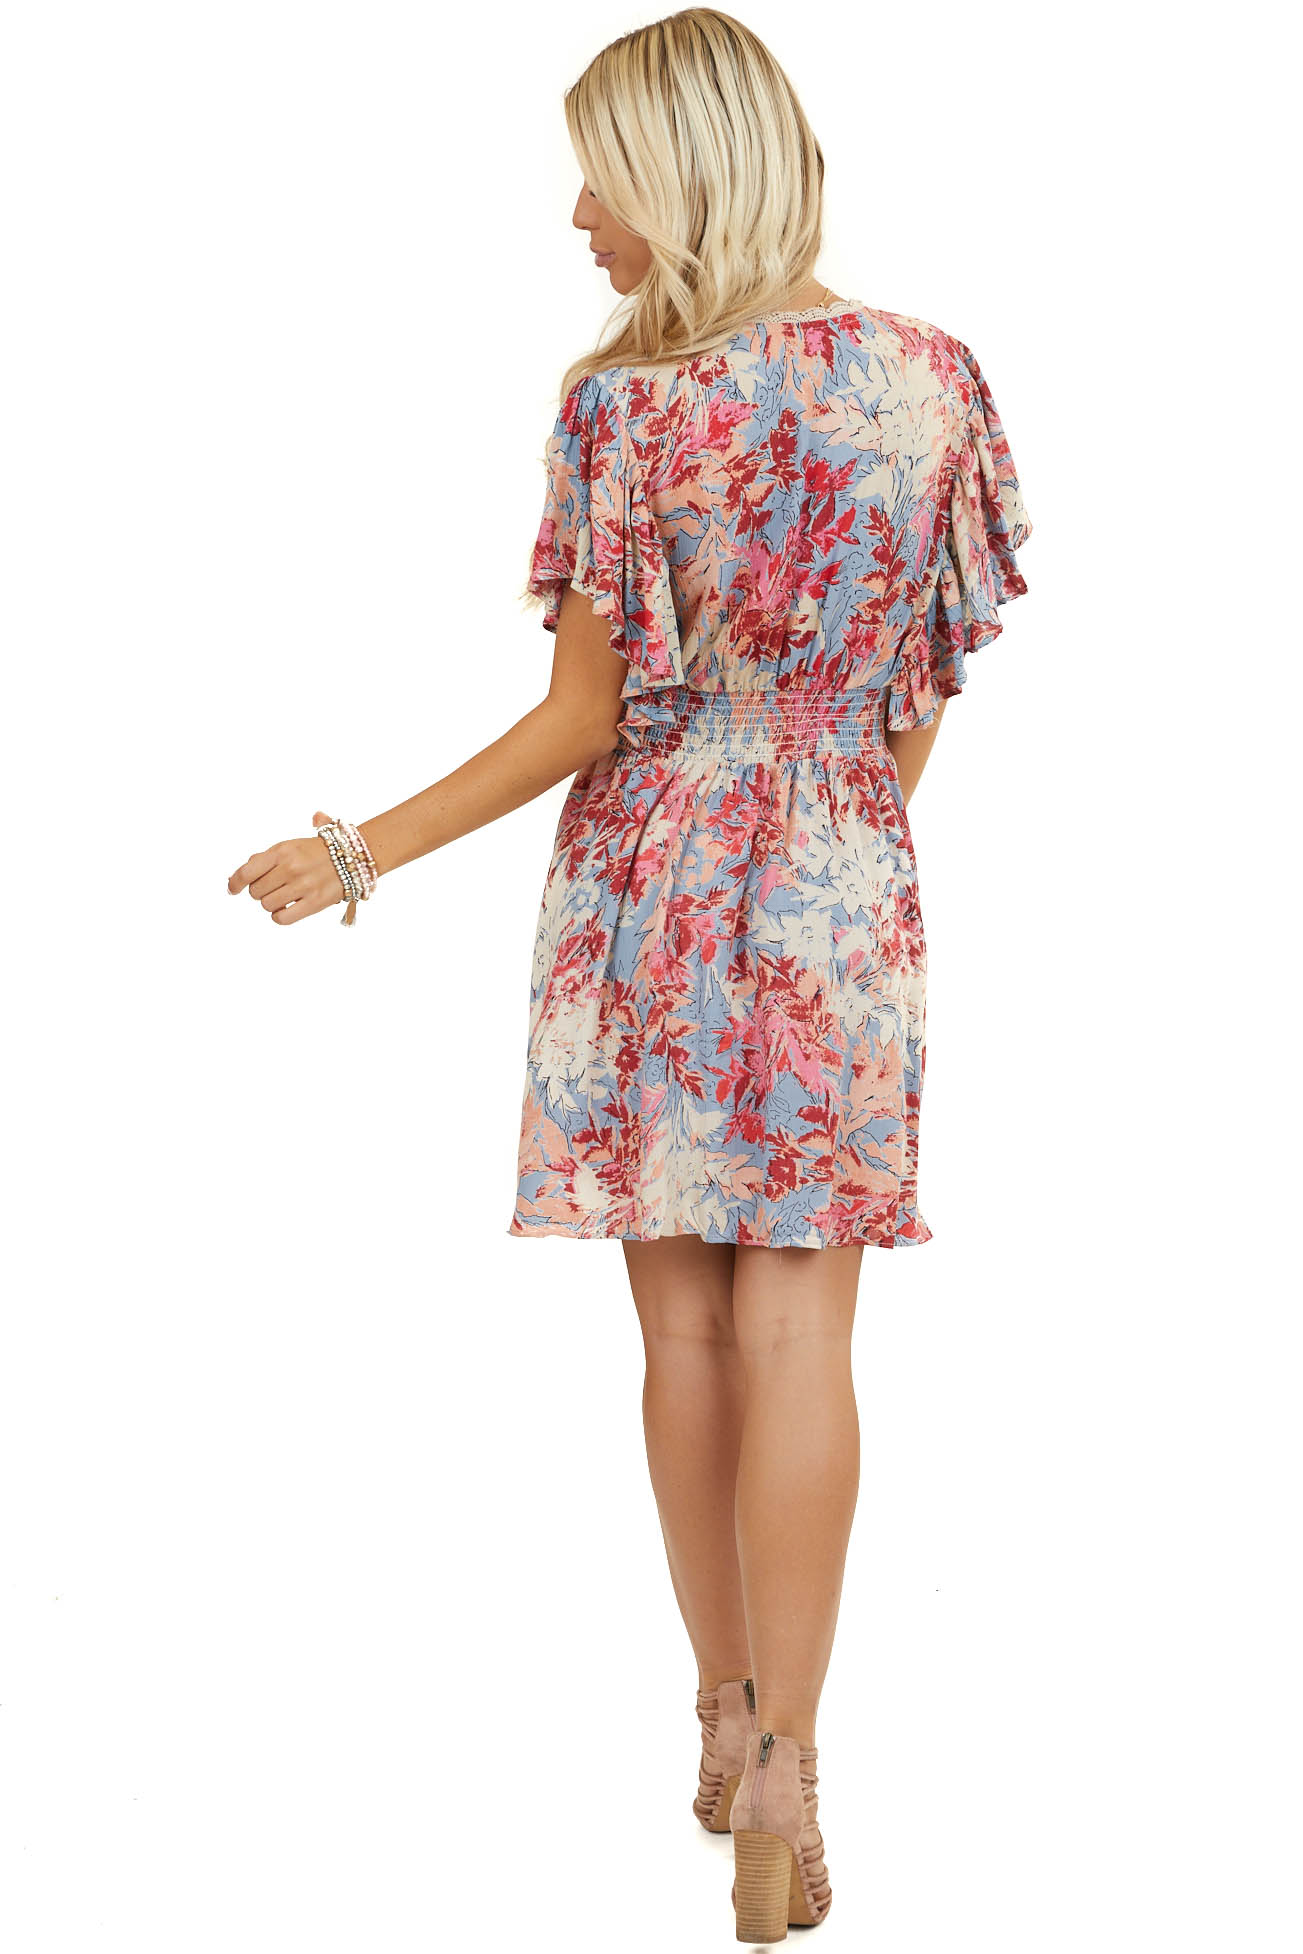 Periwinkle Floral Surplice Short Dress with Ruffle Details